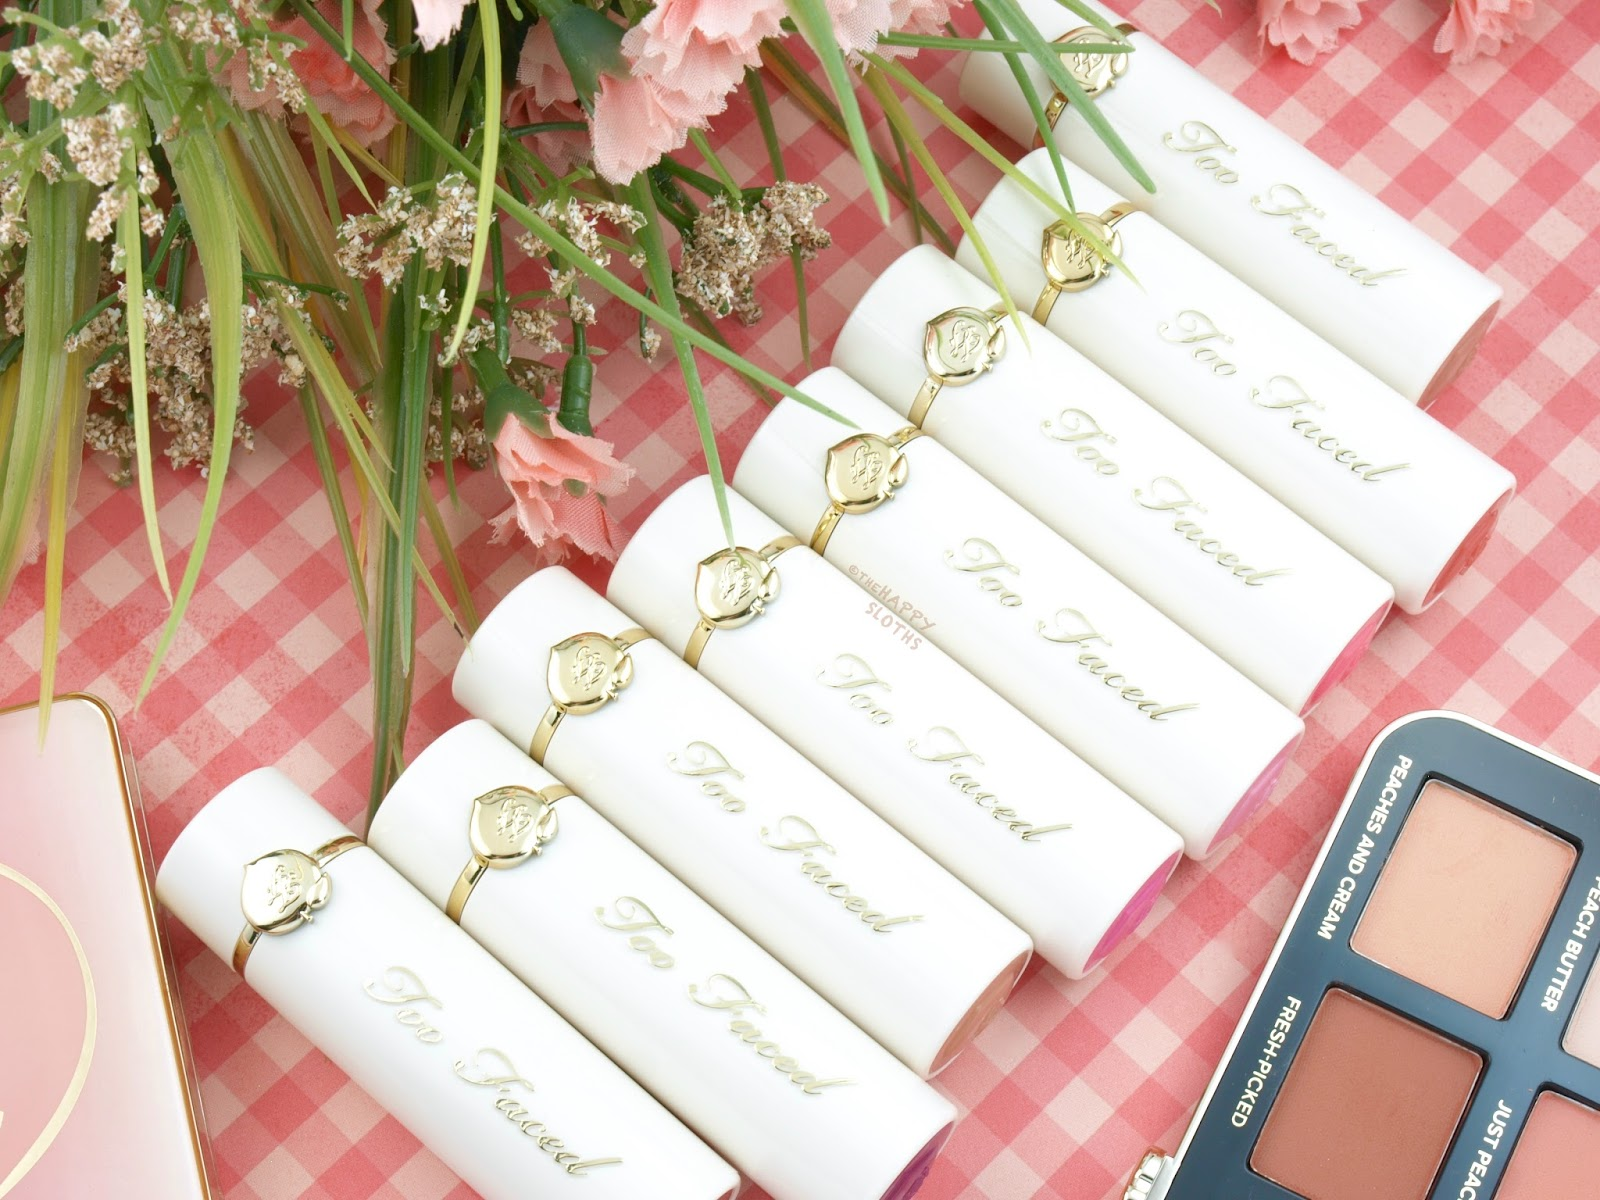 Too Faced Peaches & Cream Collection | Peach Kiss Moisture Matte Long Wear Lipstick: Review and Swatches